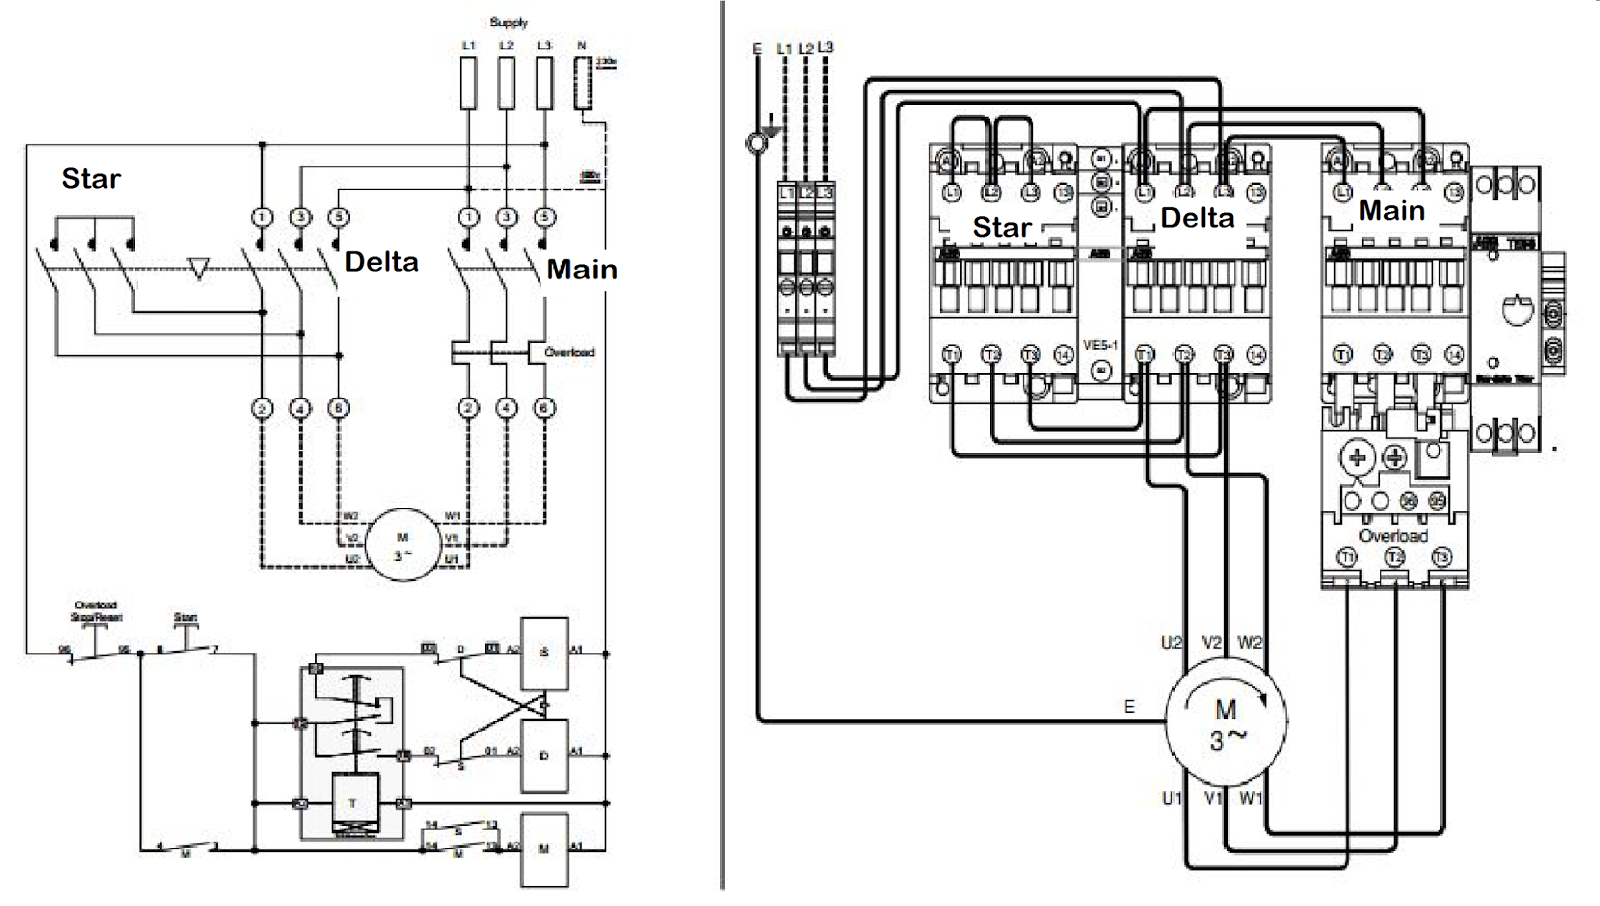 Delta Wye Schematic Diagram